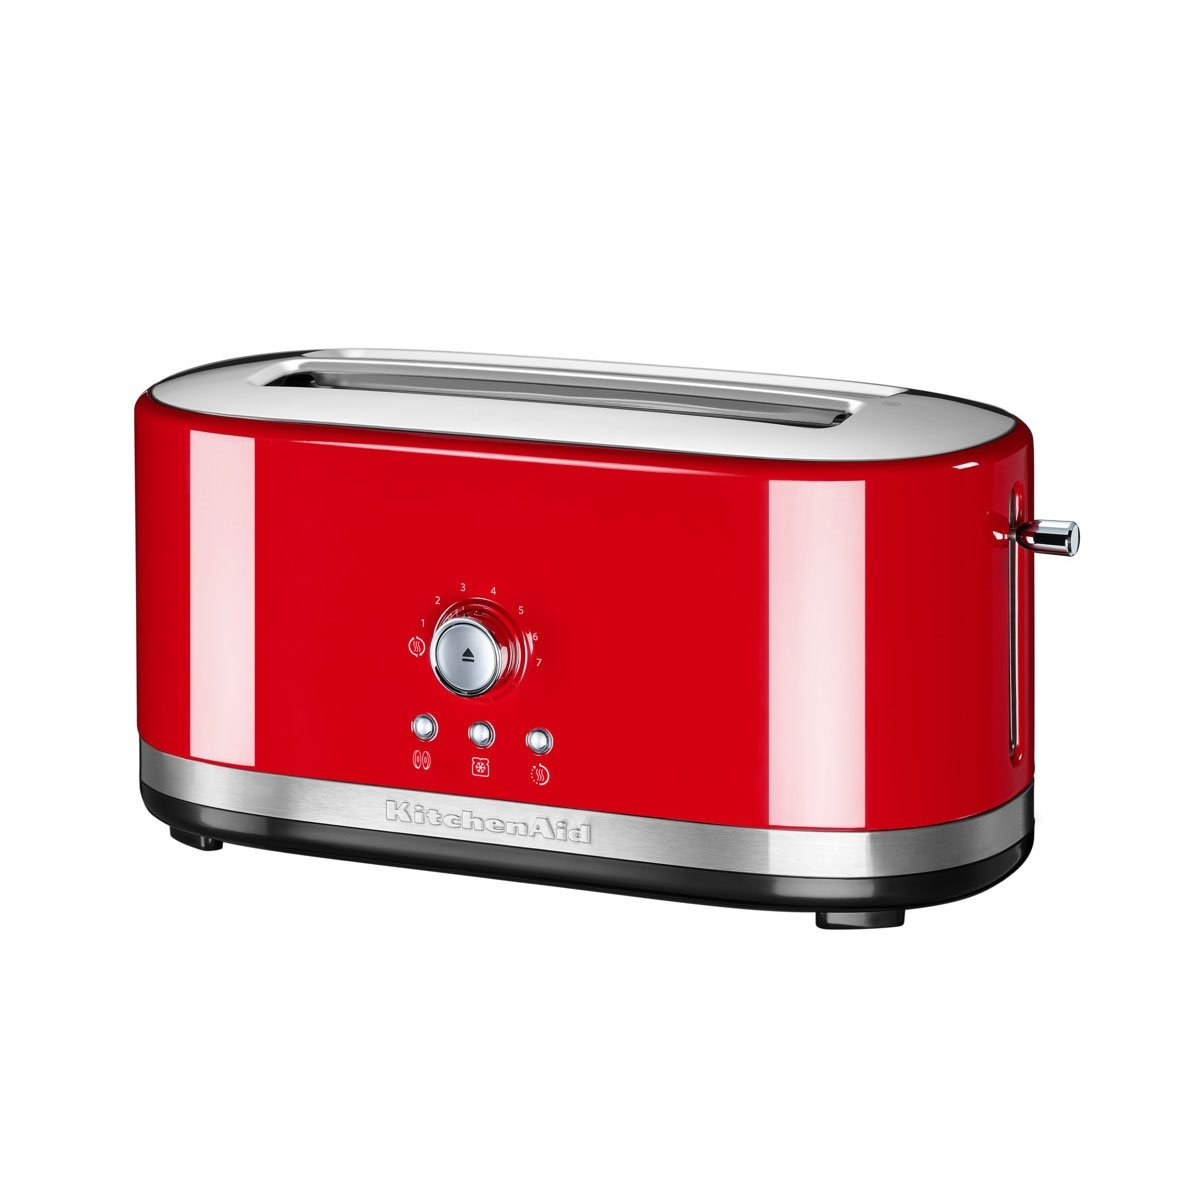 Prajitor de paine 2 sloturi extra lungi 5KMT4116E, 1800W, KitchenAid imagine